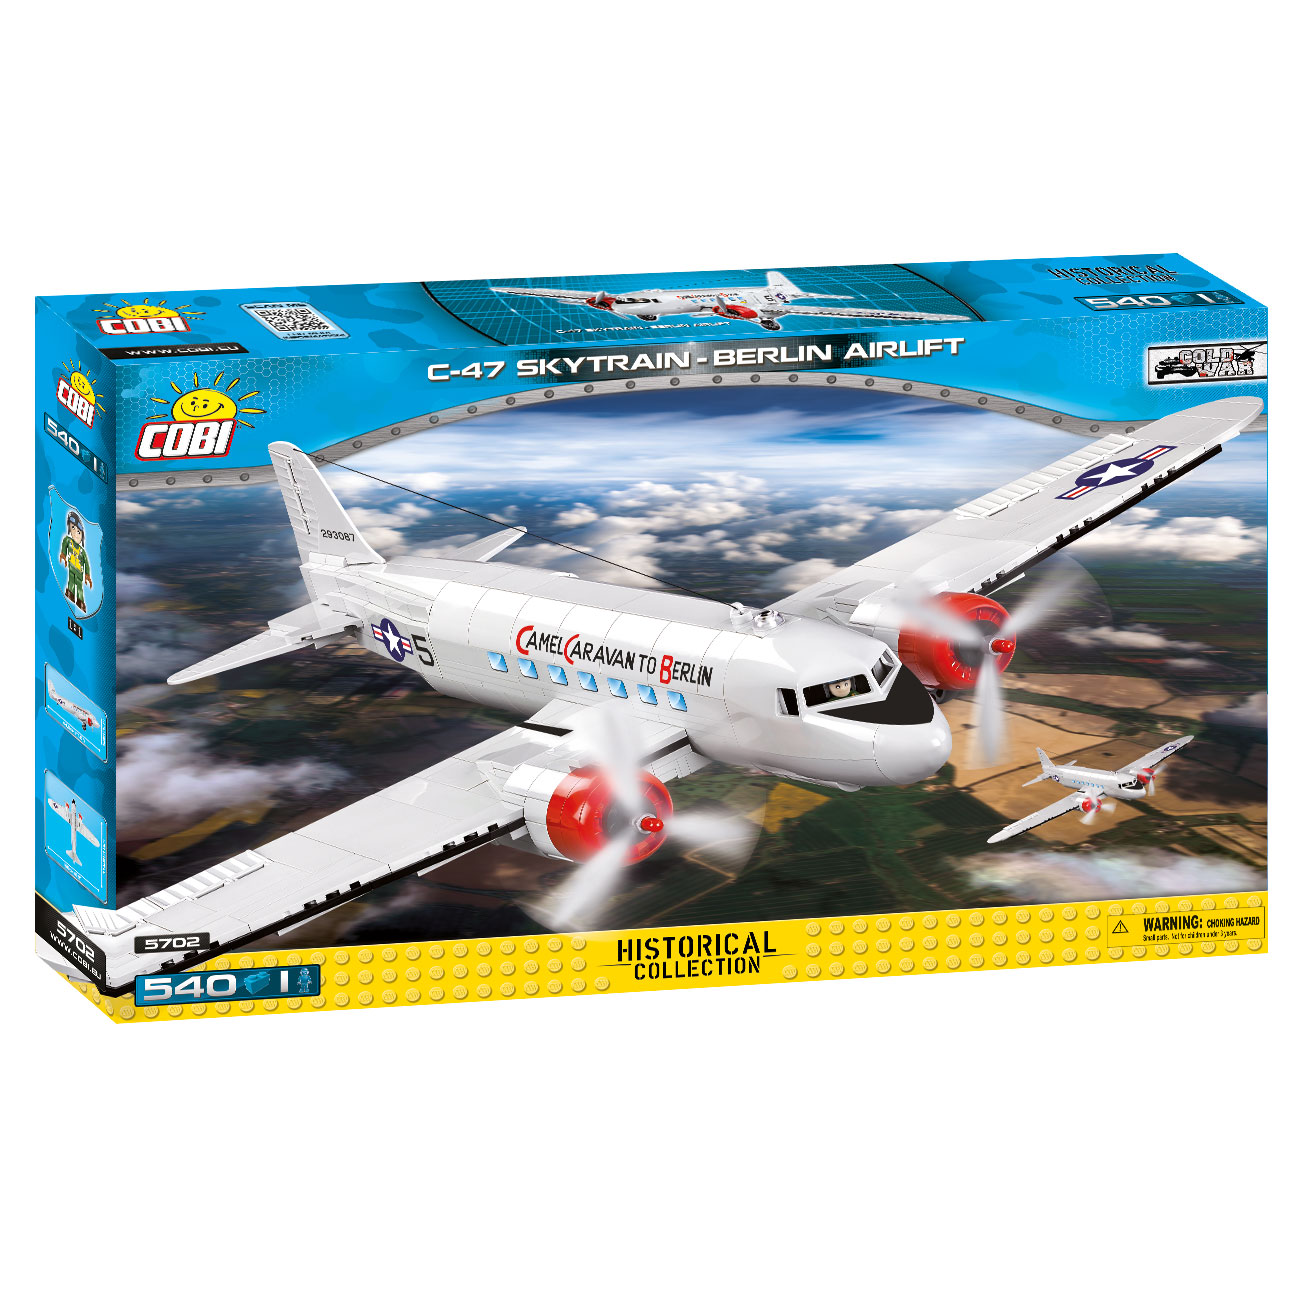 Cobi Historical Collection Bausatz Flugzeug C-47 Skytrain - Berlin Airlift 540 Teile 5702 3